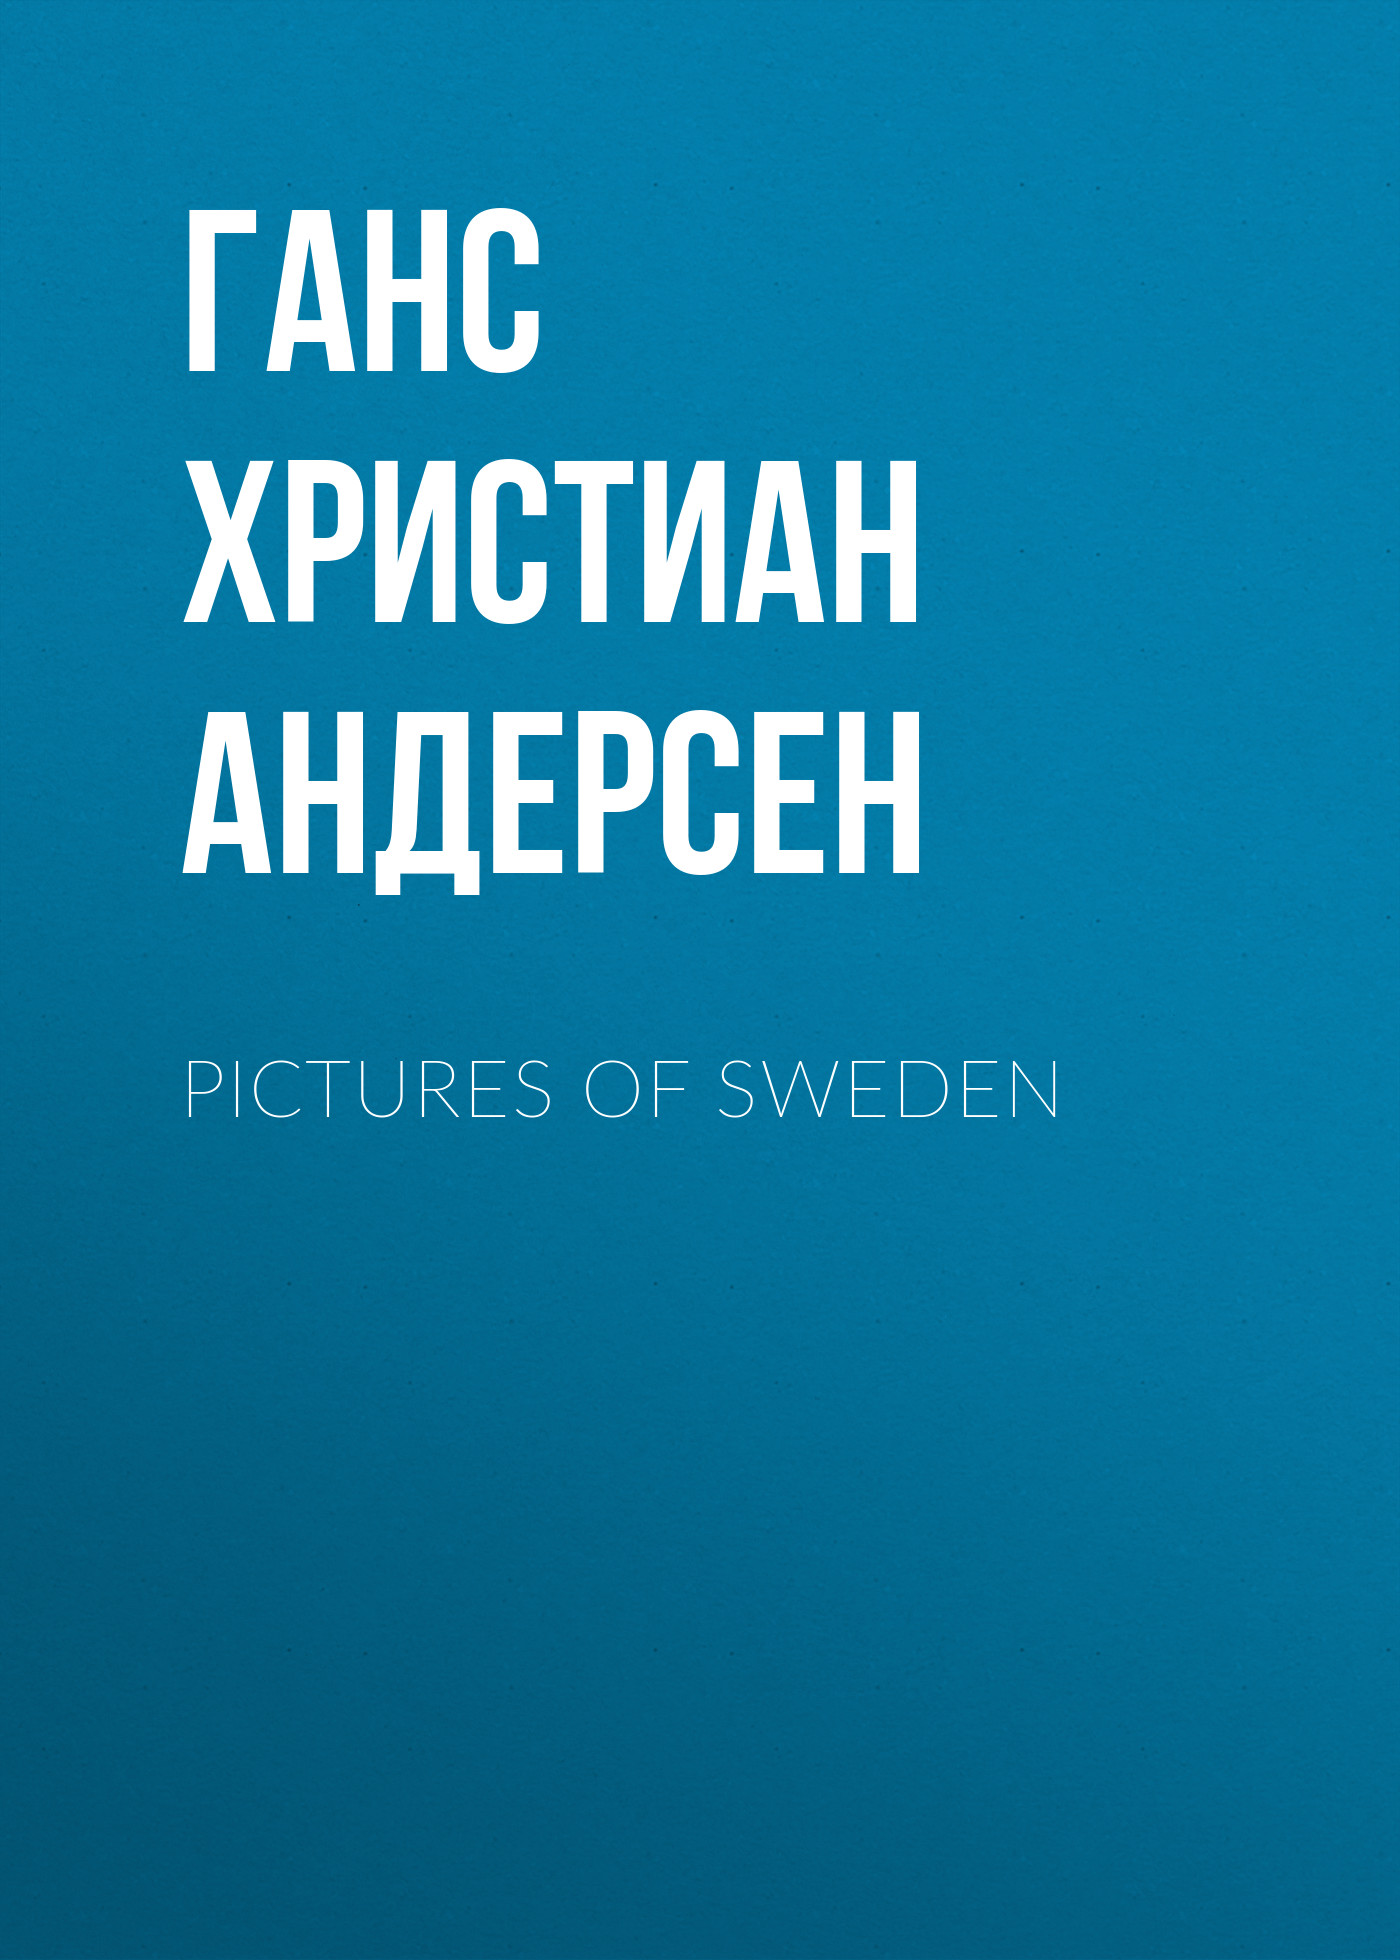 Ганс Христиан Андерсен Pictures of Sweden недорого